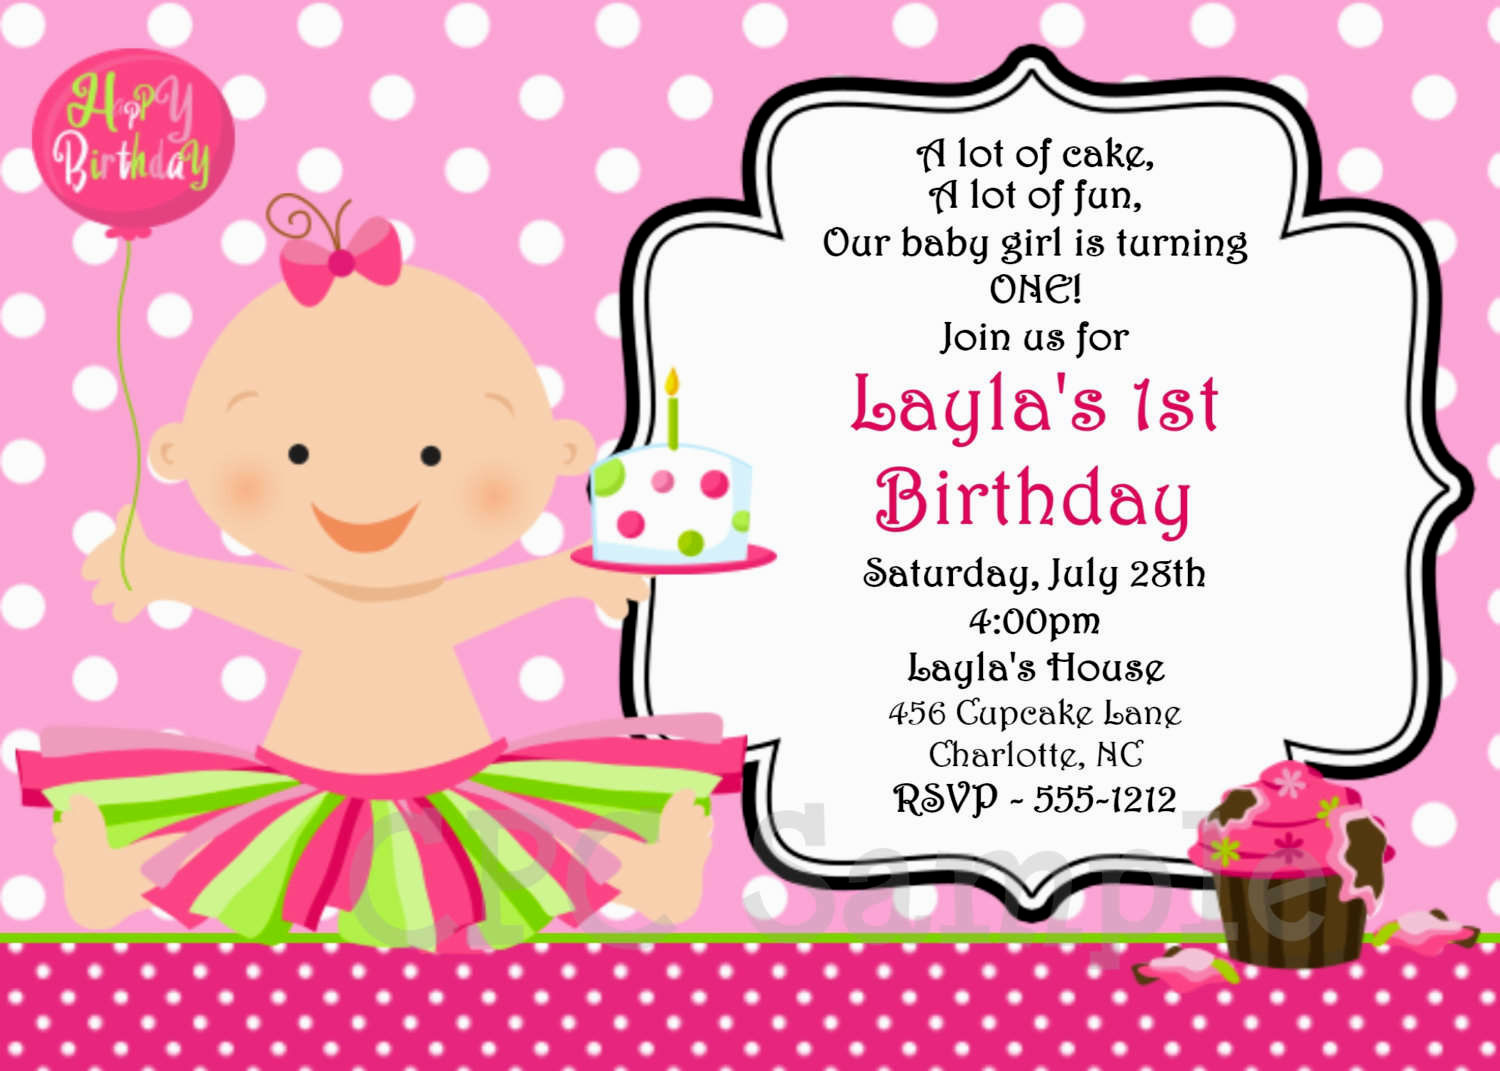 online birthday party invitation creator ; Excellent-Print-Free-Birthday-Party-Invitation-All-Inexpensive-Article-Photos-On-Print-Party-Invitations-Online